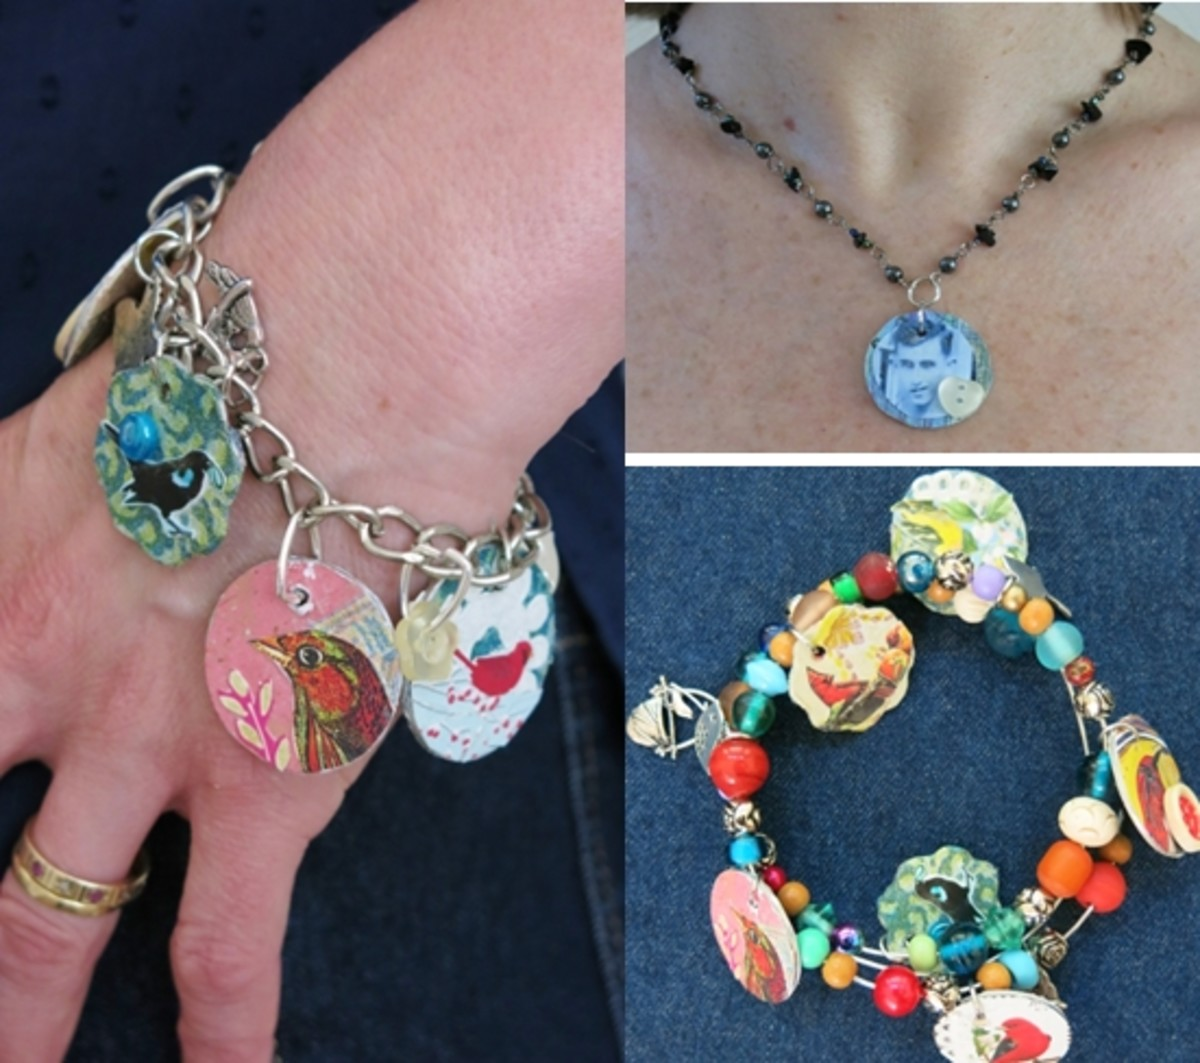 free-jewelry-making-tutorials-crafting-handmade-pins-bracelets-necklaces-and-more